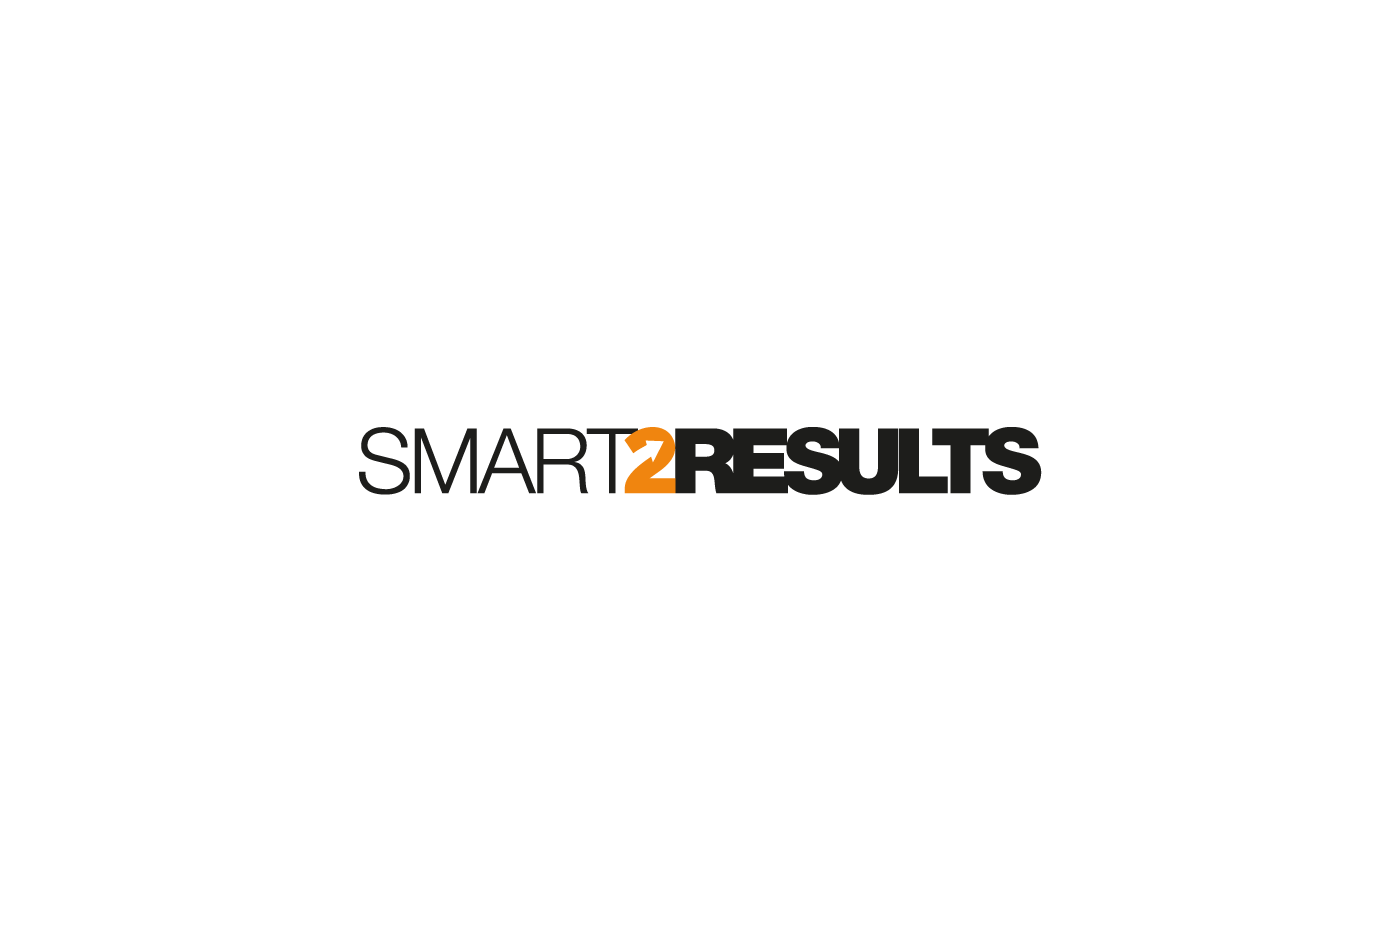 Smart2results